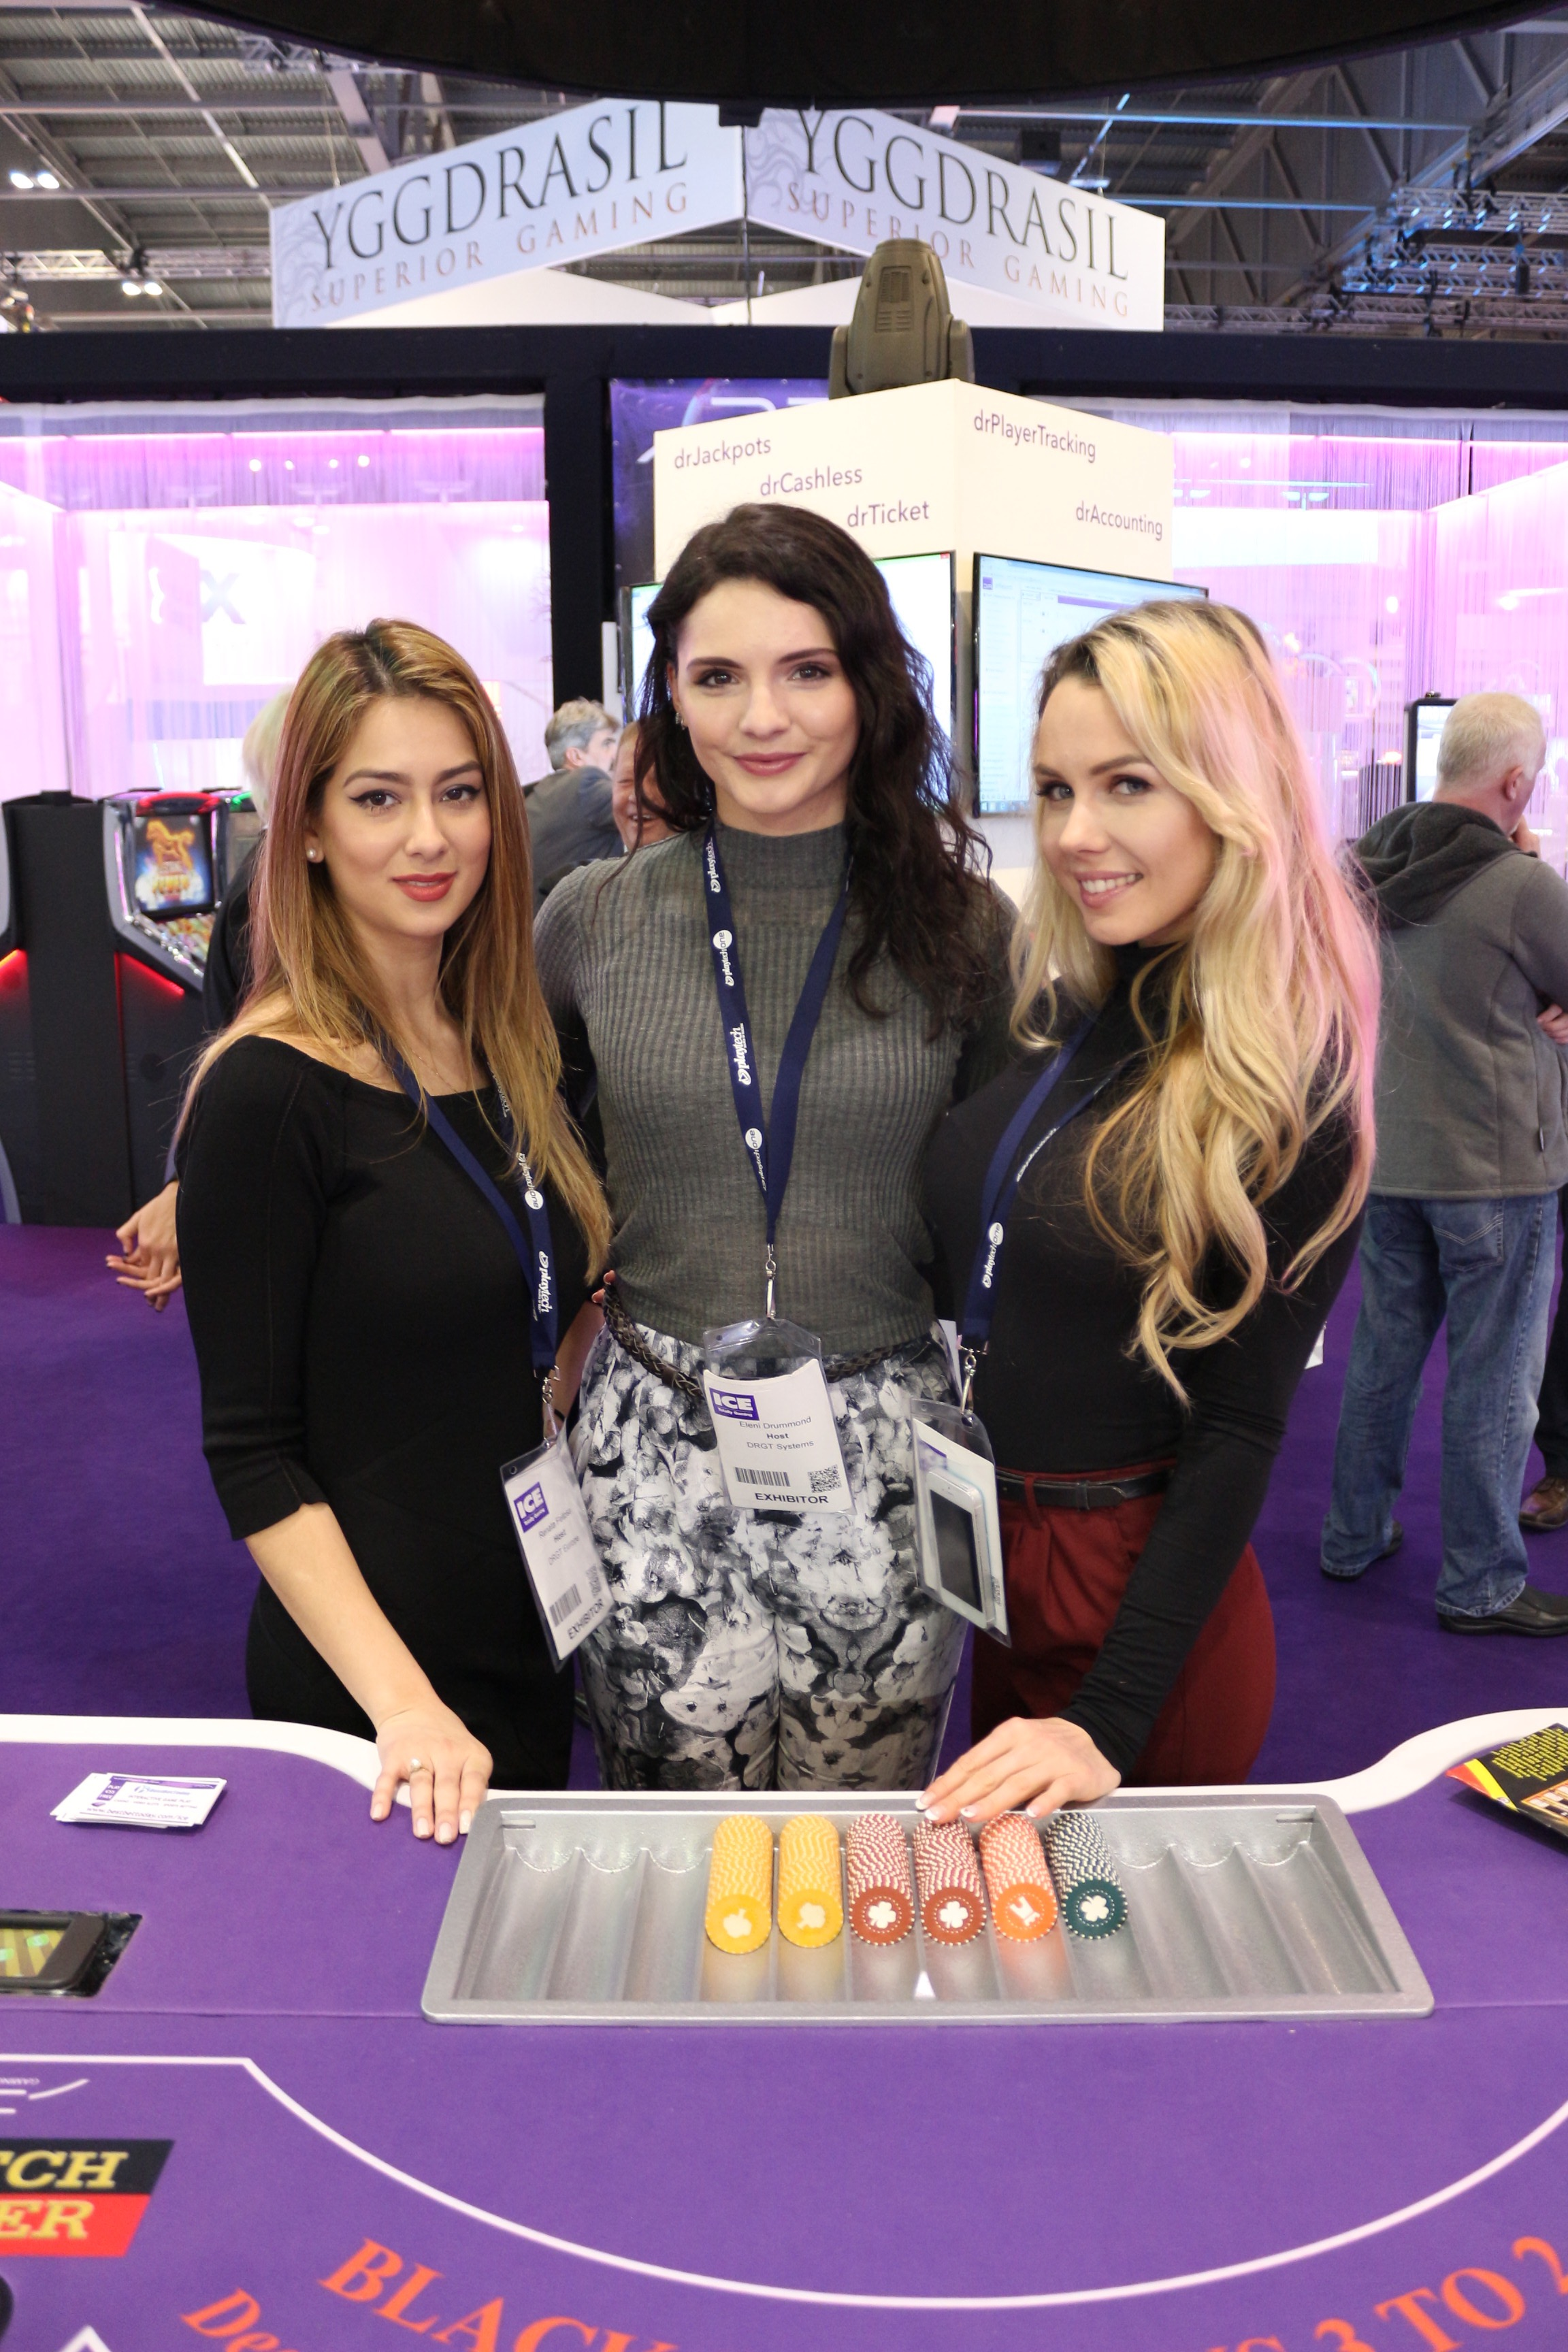 Promo Girls working with Exhibition Girls